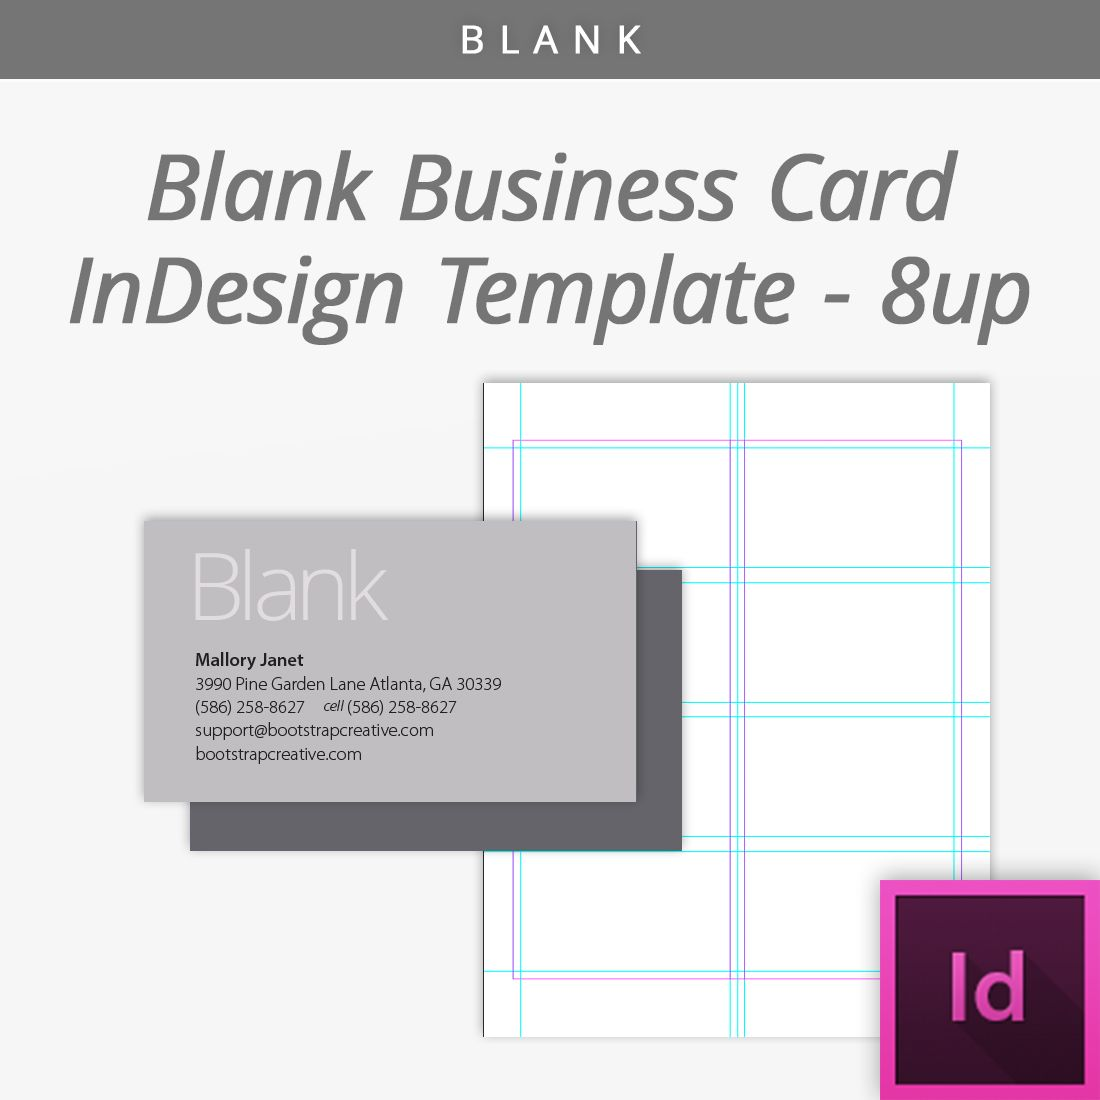 Blank indesign business card template 8 up free download blank indesign business card template 8 up free download designtemplate reheart Gallery